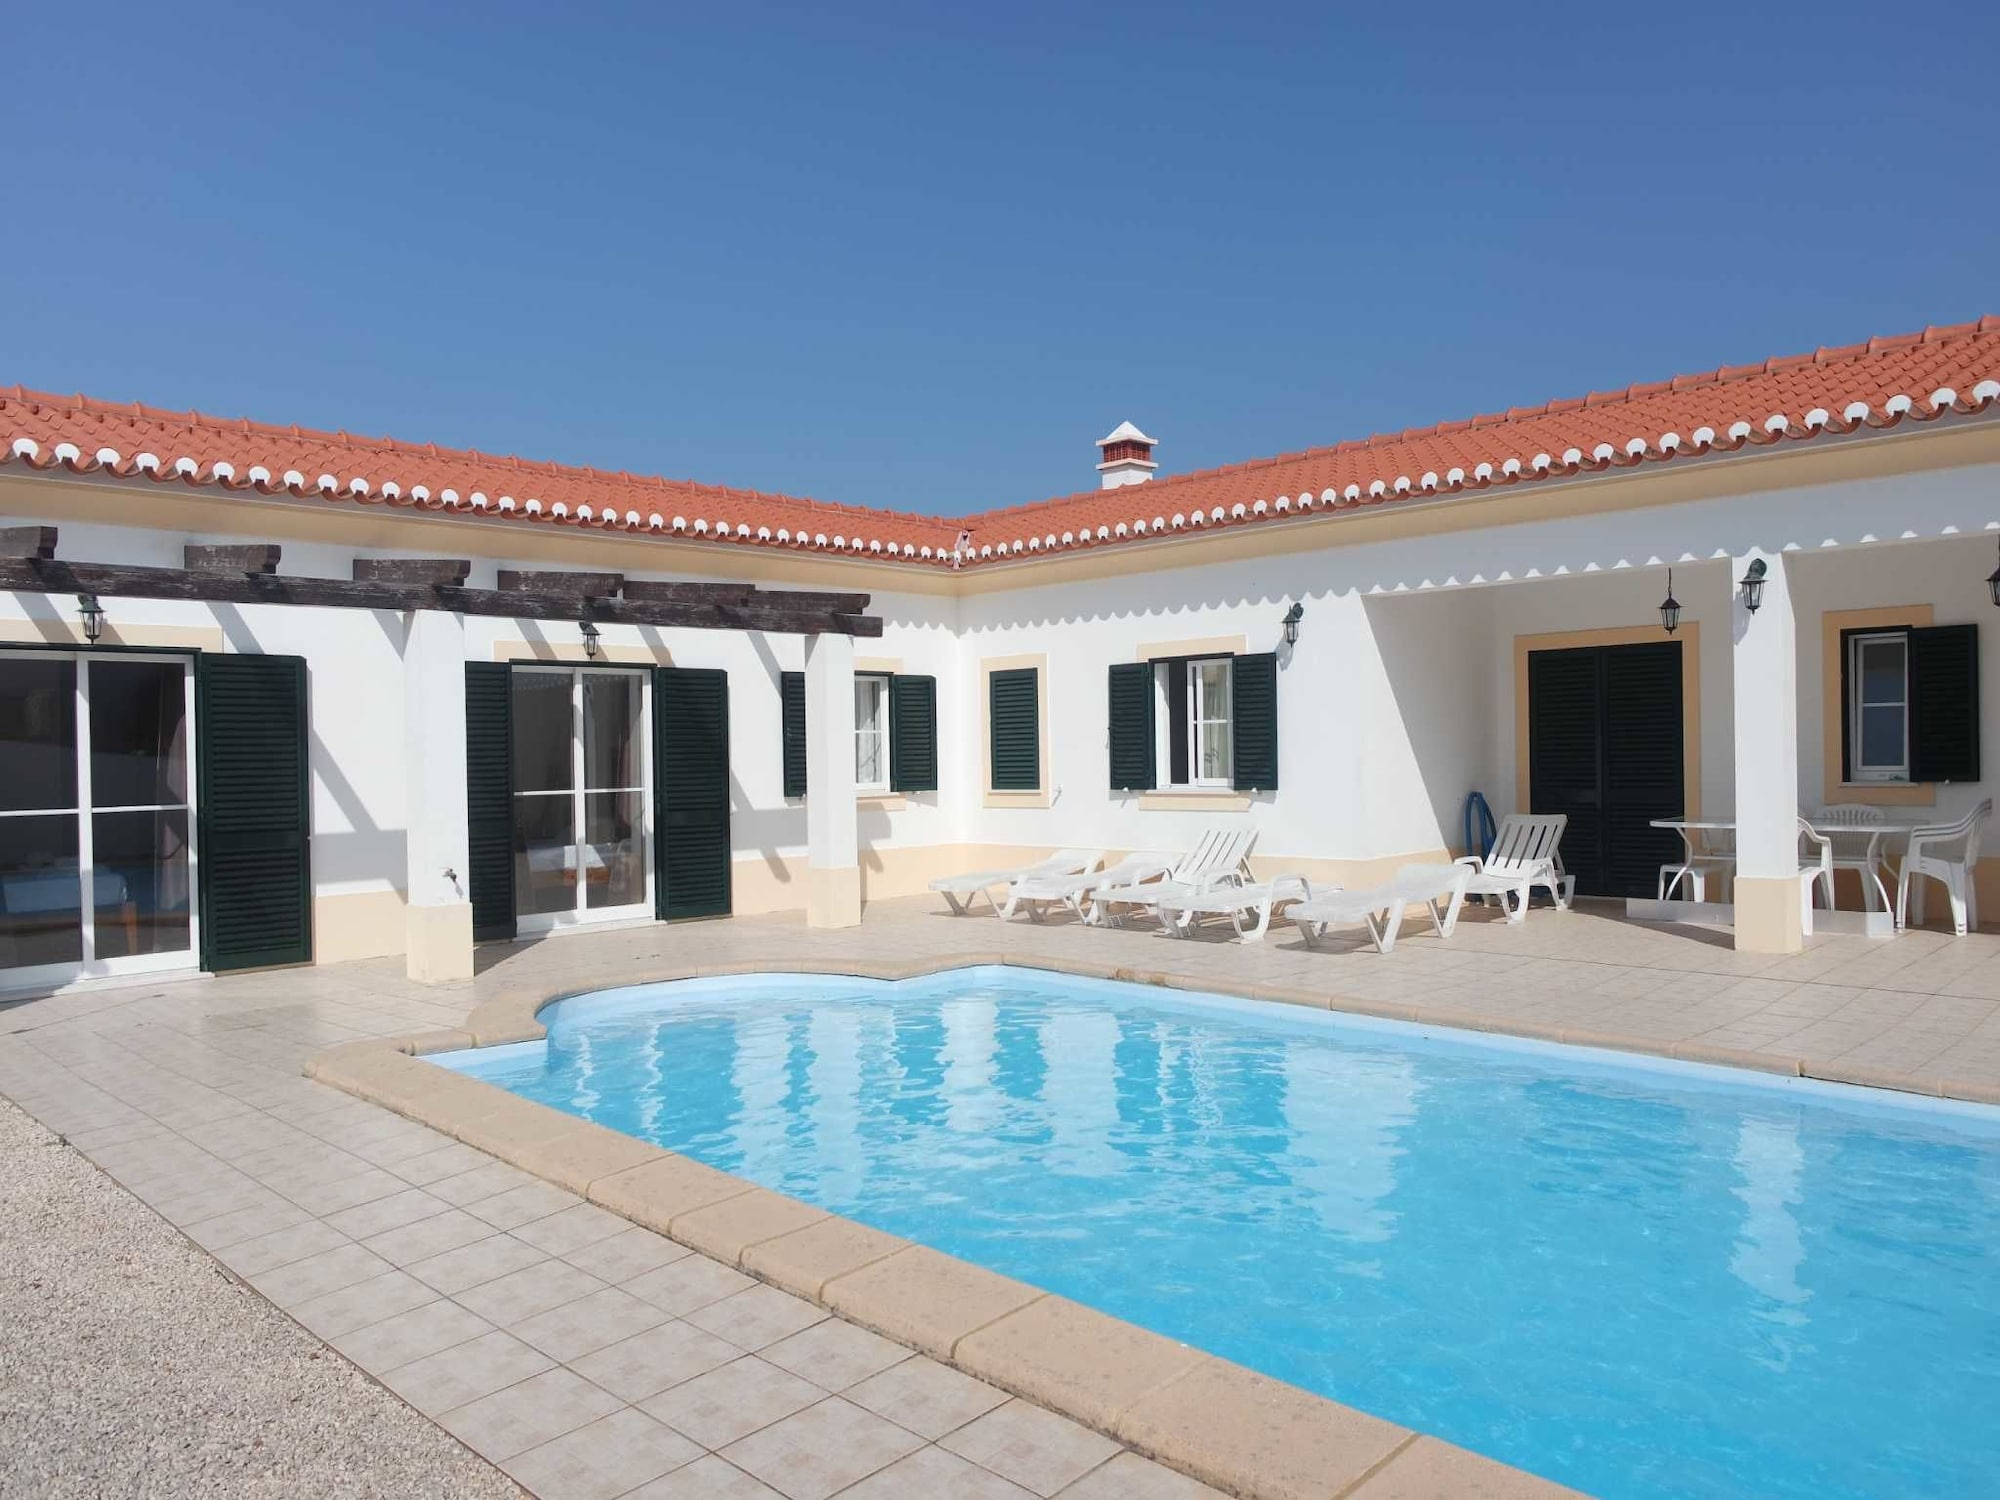 D06 - Holiday House Vale da Telha by DreamAlgarve, Aljezur